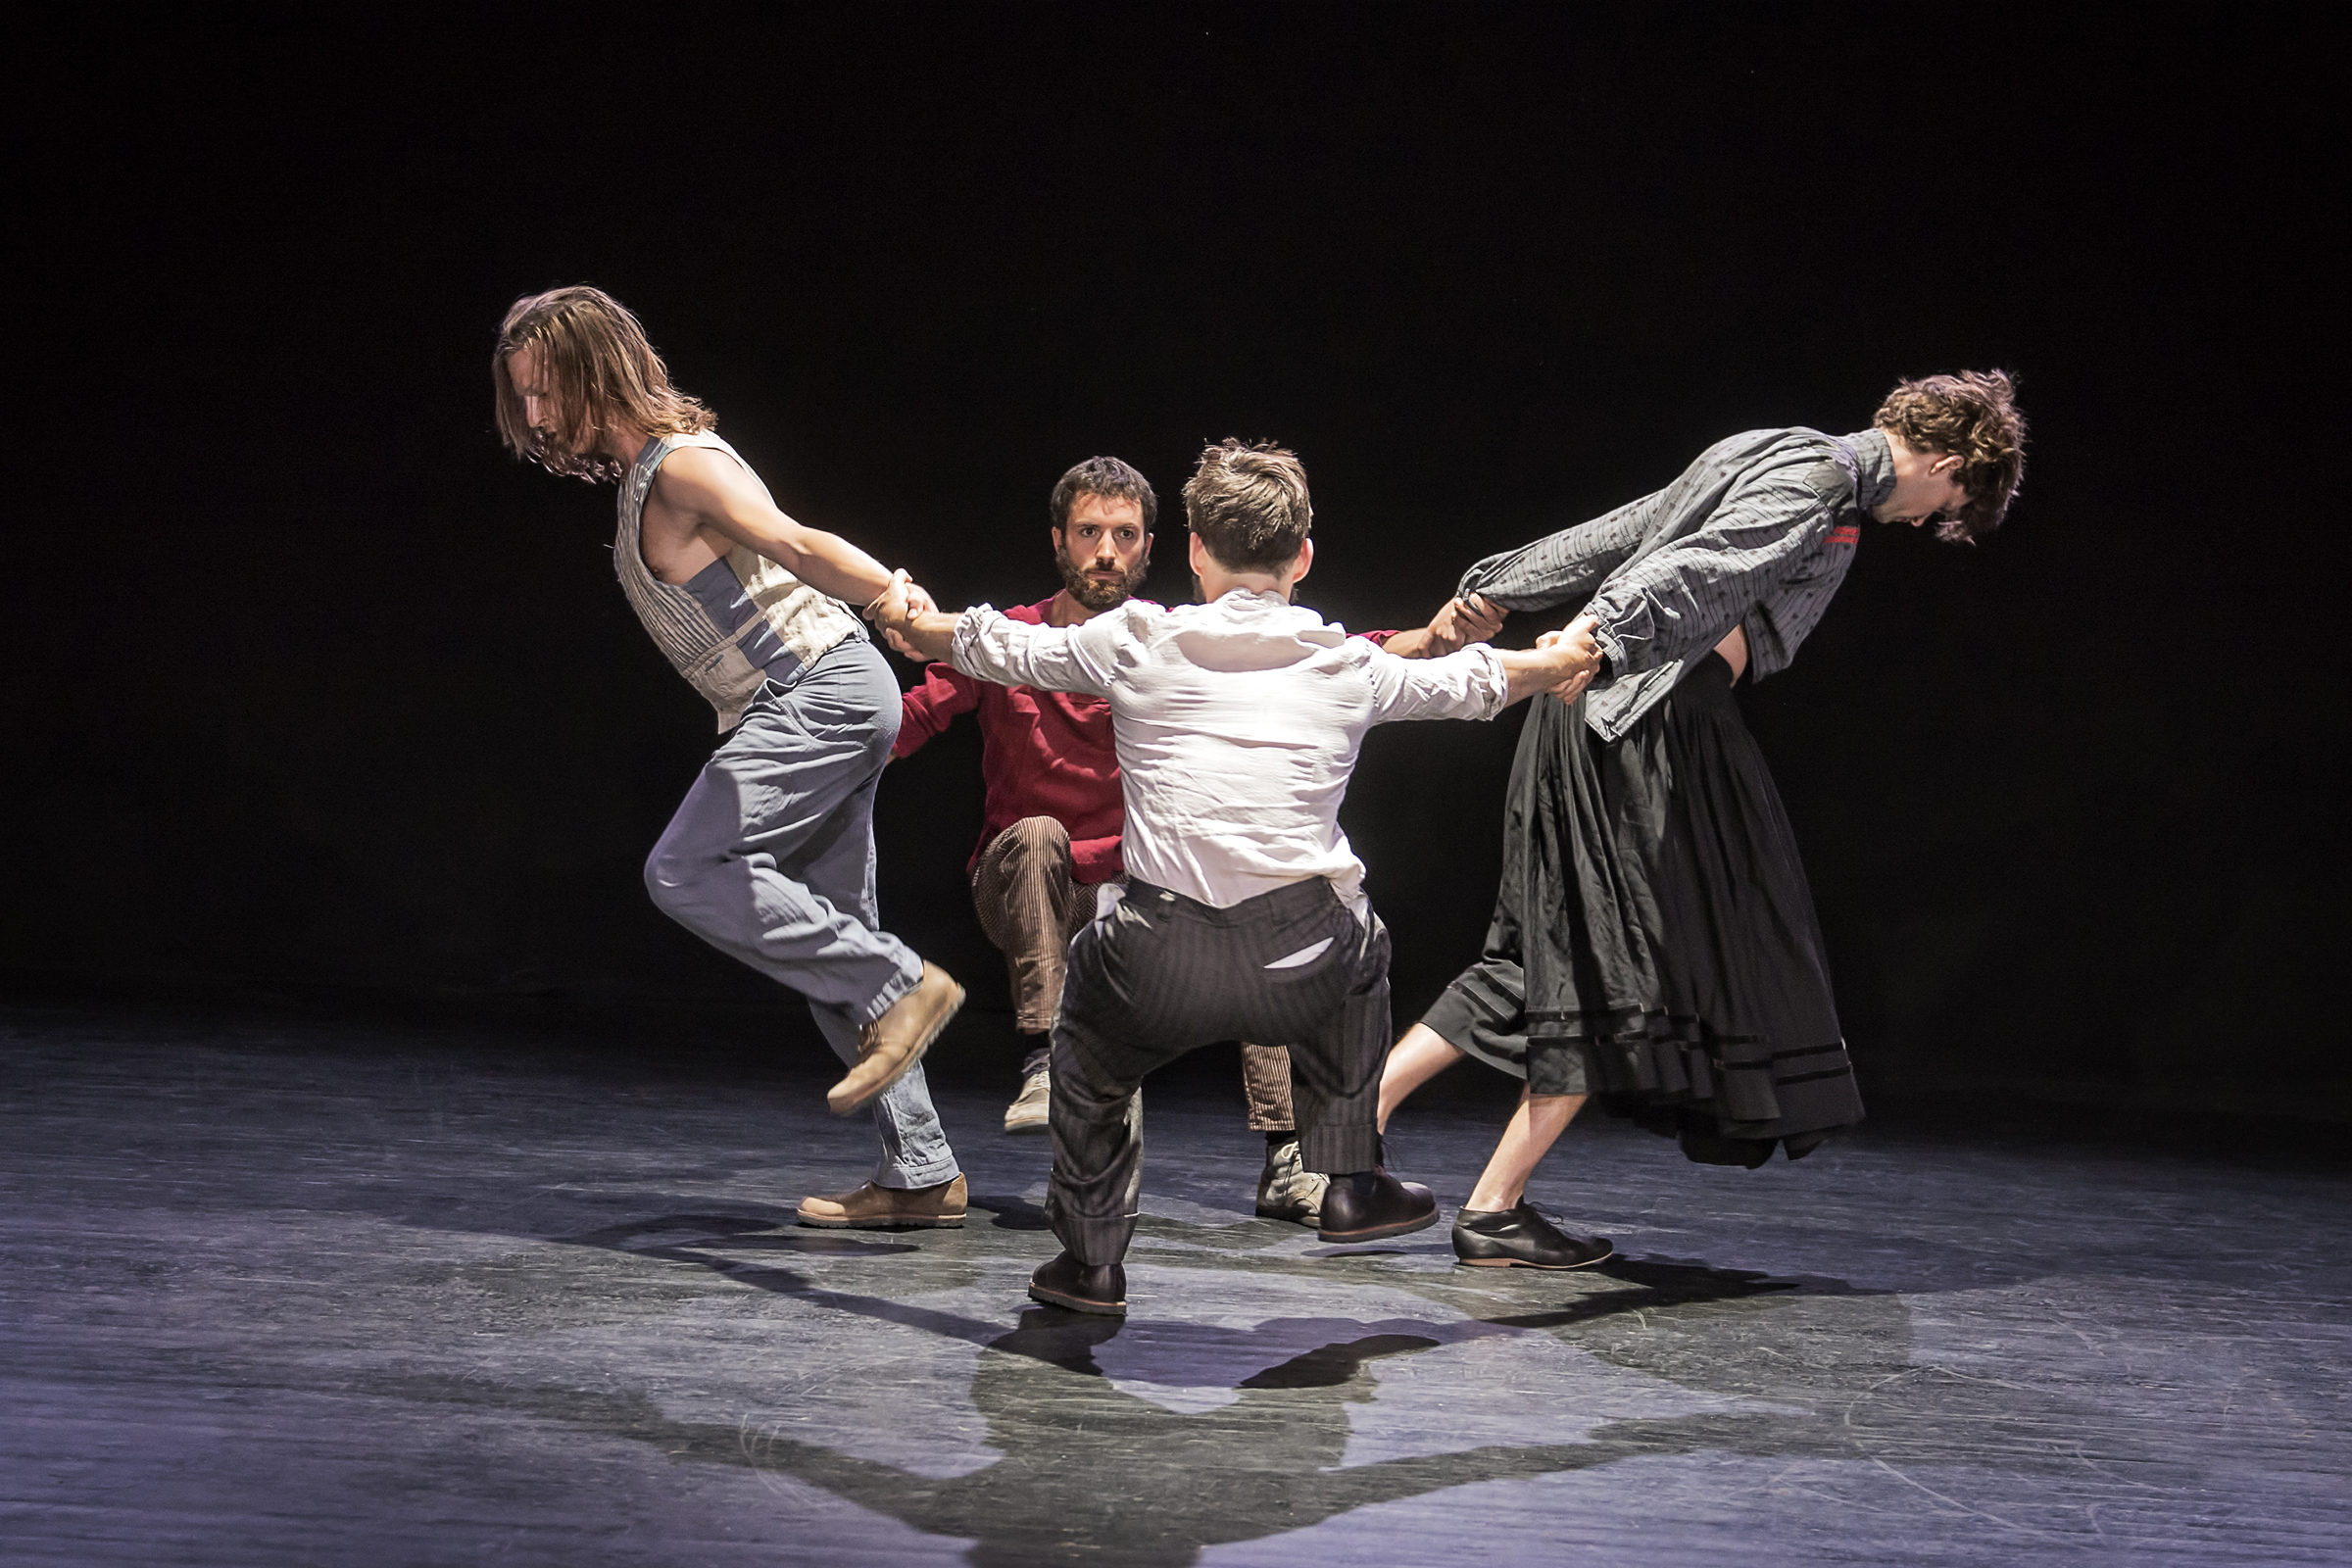 Austria's Simon Mayer subverts traditional dances and music in Sons of Sissy, Apr 4-6